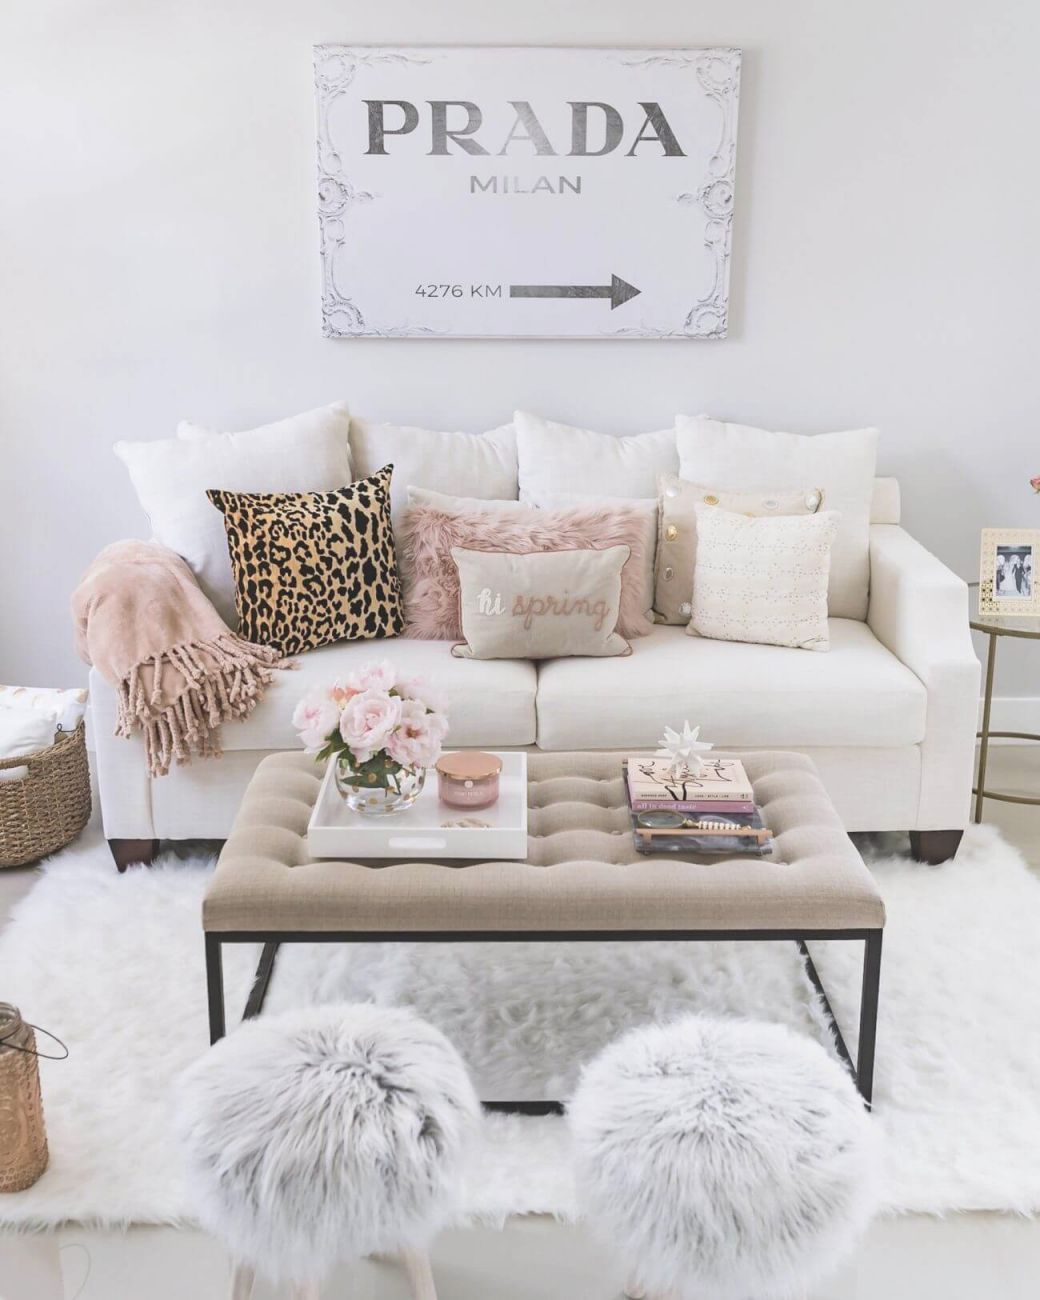 20 Best Small Apartment Living Room Decor And Design Ideas intended for Apartment Living Room Decor Ideas